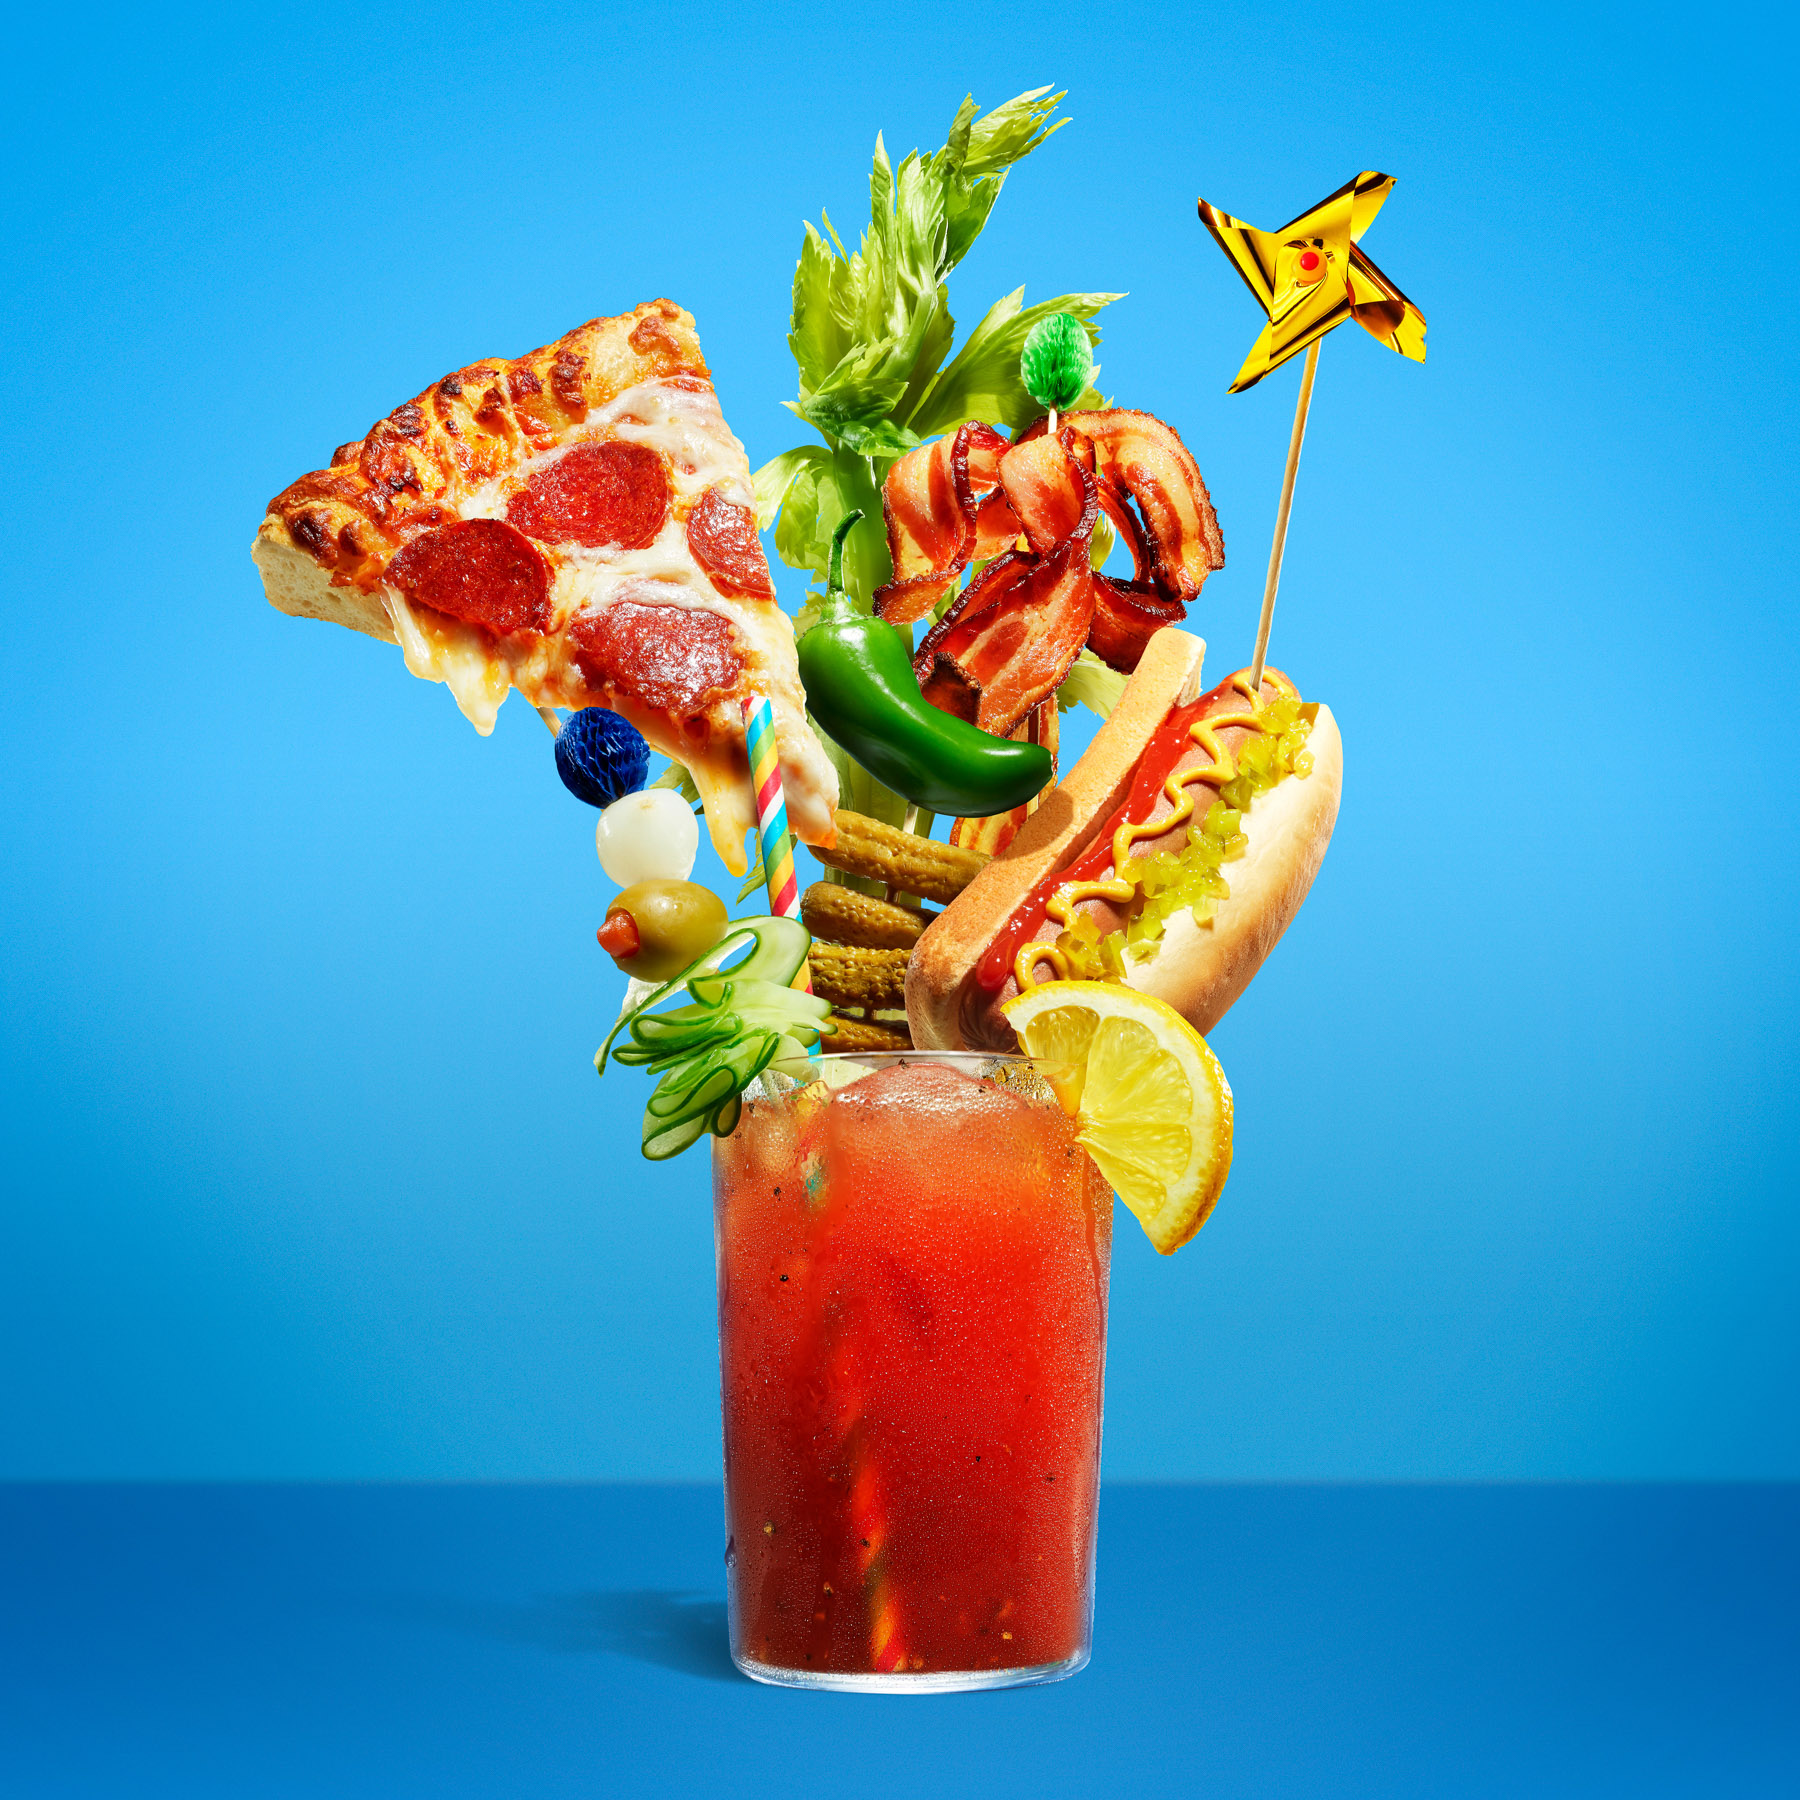 food stylist in San Francisco - Bloody mary with crazy garnishes - over-the-top cocktails, photographed by Annabelle Breakey photographer